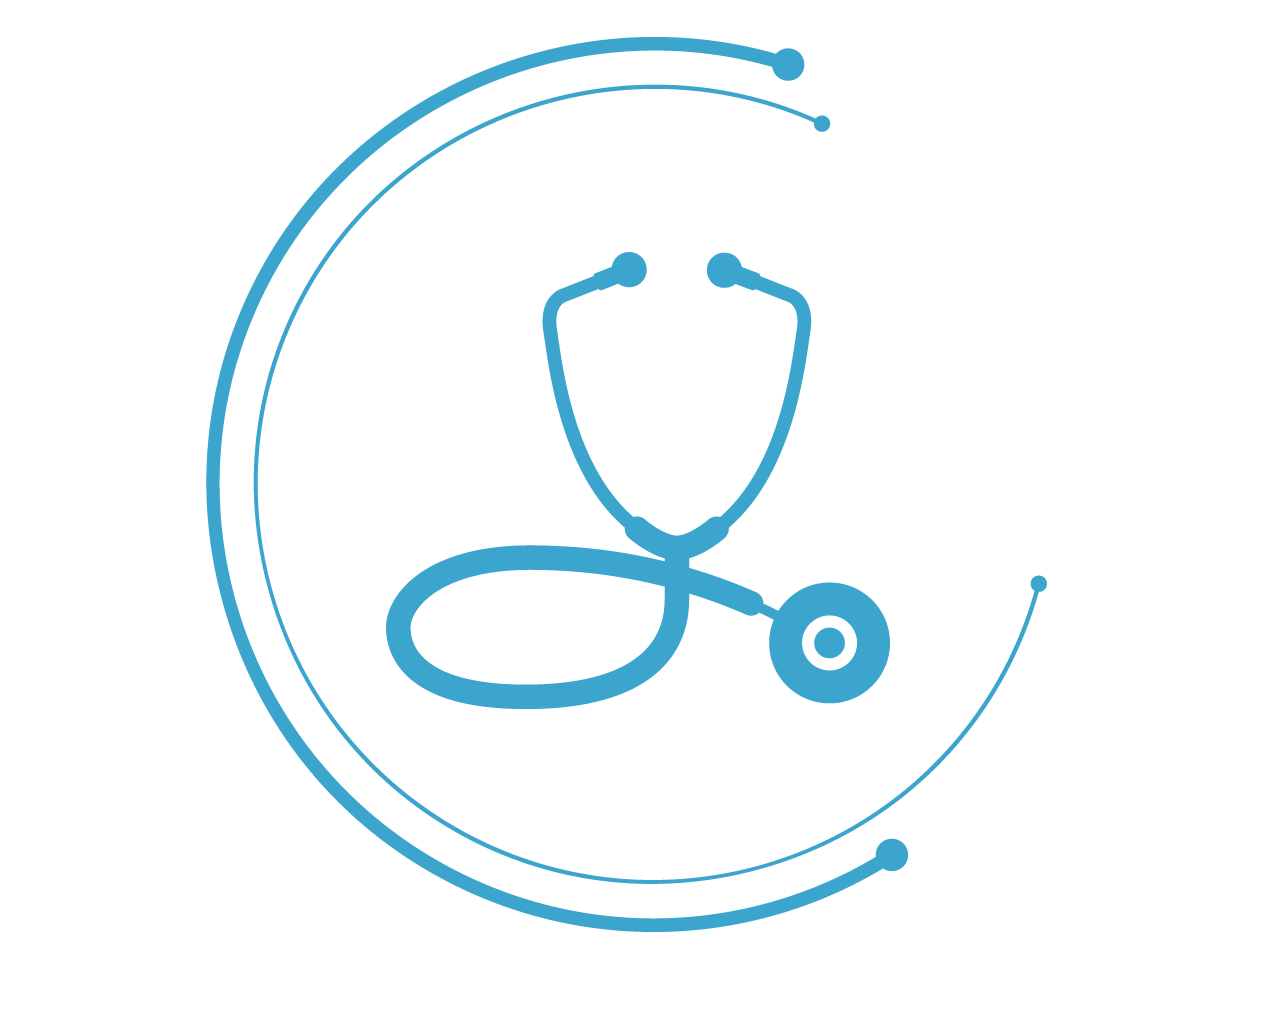 stethoscope_png-01.png